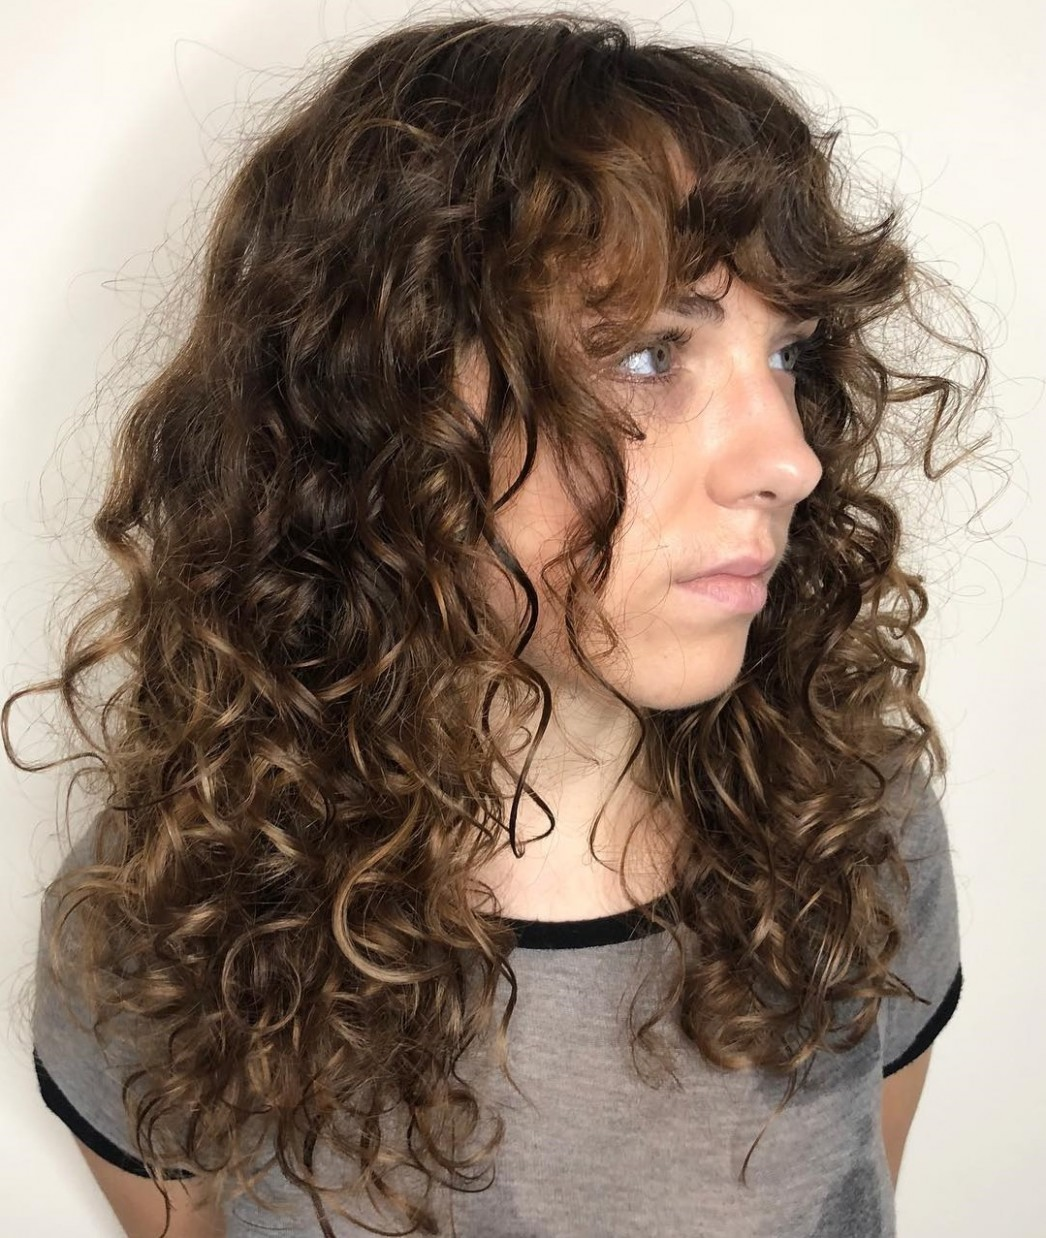 11 Natural Curly Hairstyles & Curly Hair Ideas To Try In 11 Curly Hair Layers Long